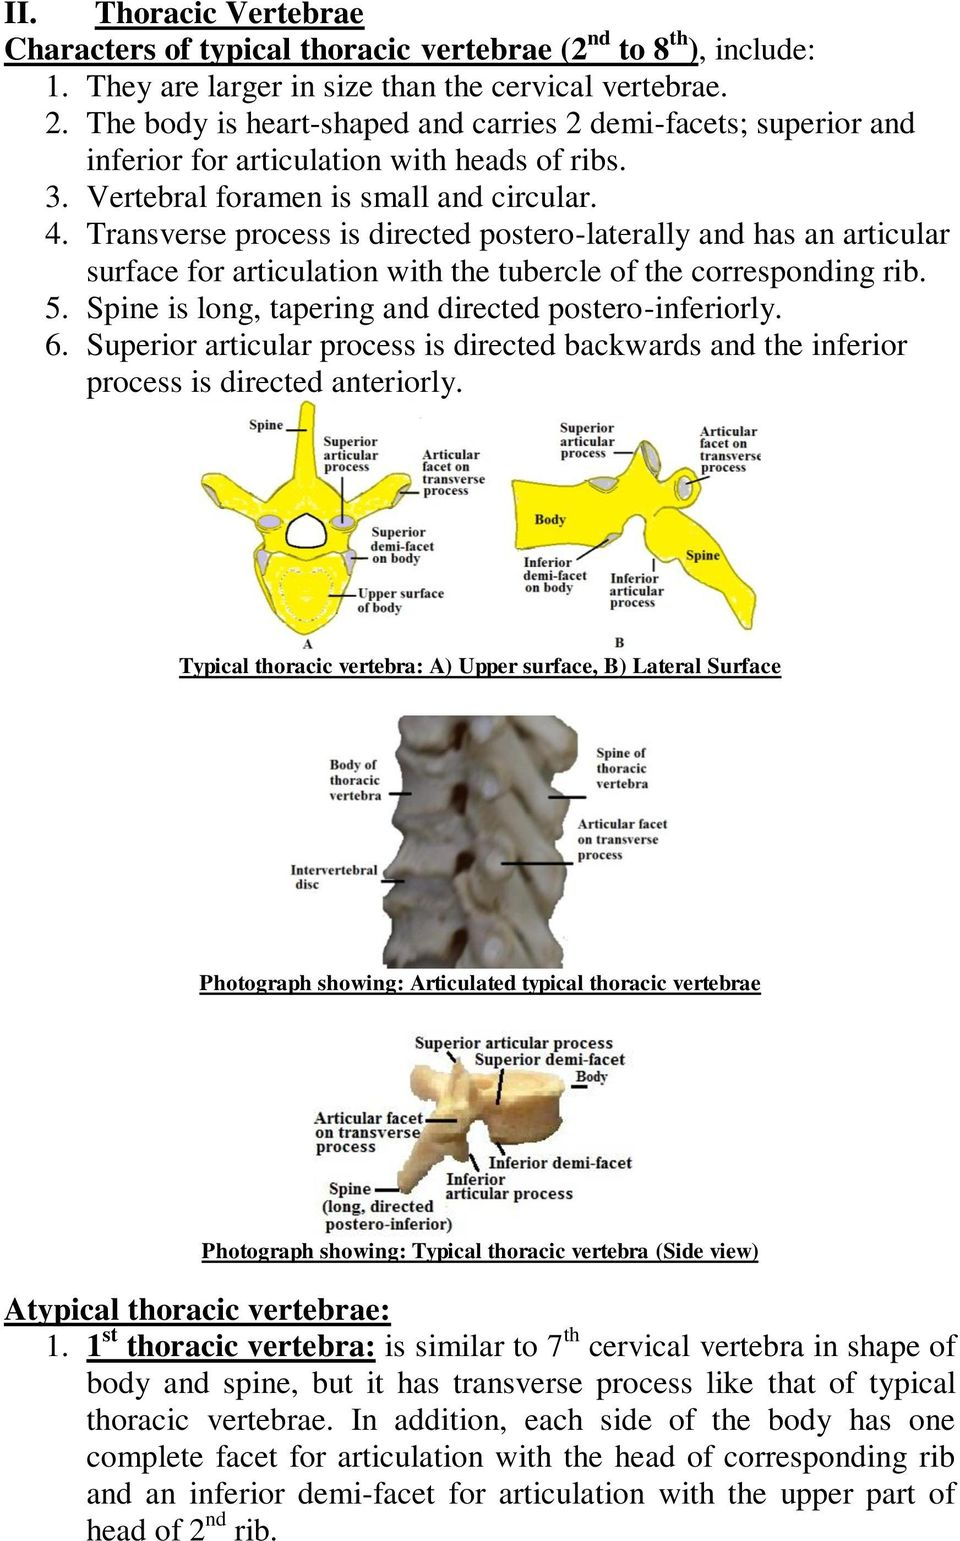 Transverse process is directed postero-laterally and has an articular surface for articulation with the tubercle of the corresponding rib. 5. Spine is long, tapering and directed postero-inferiorly.